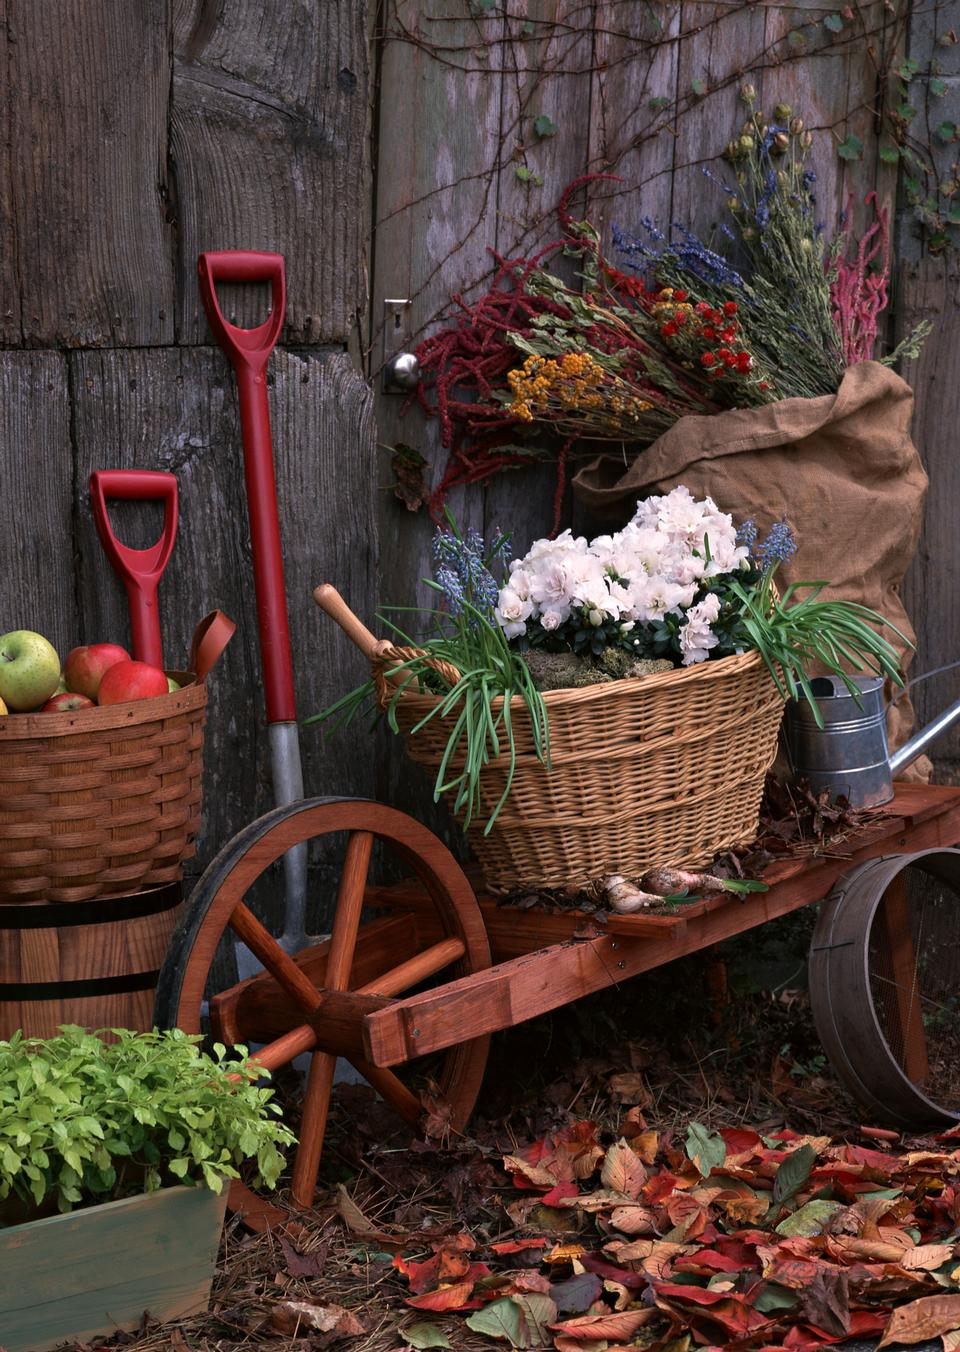 gardening tools outside the potting shed